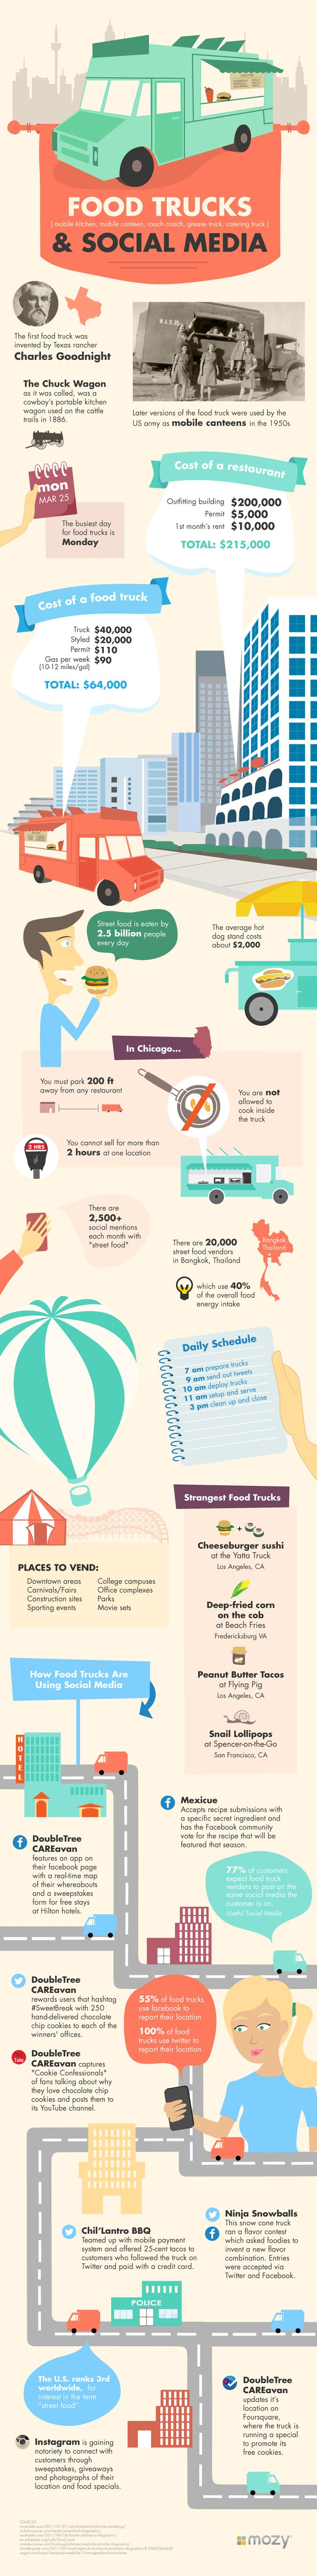 Food Trucks Put a Literal Spin on Social Media 'Follows': Infographic